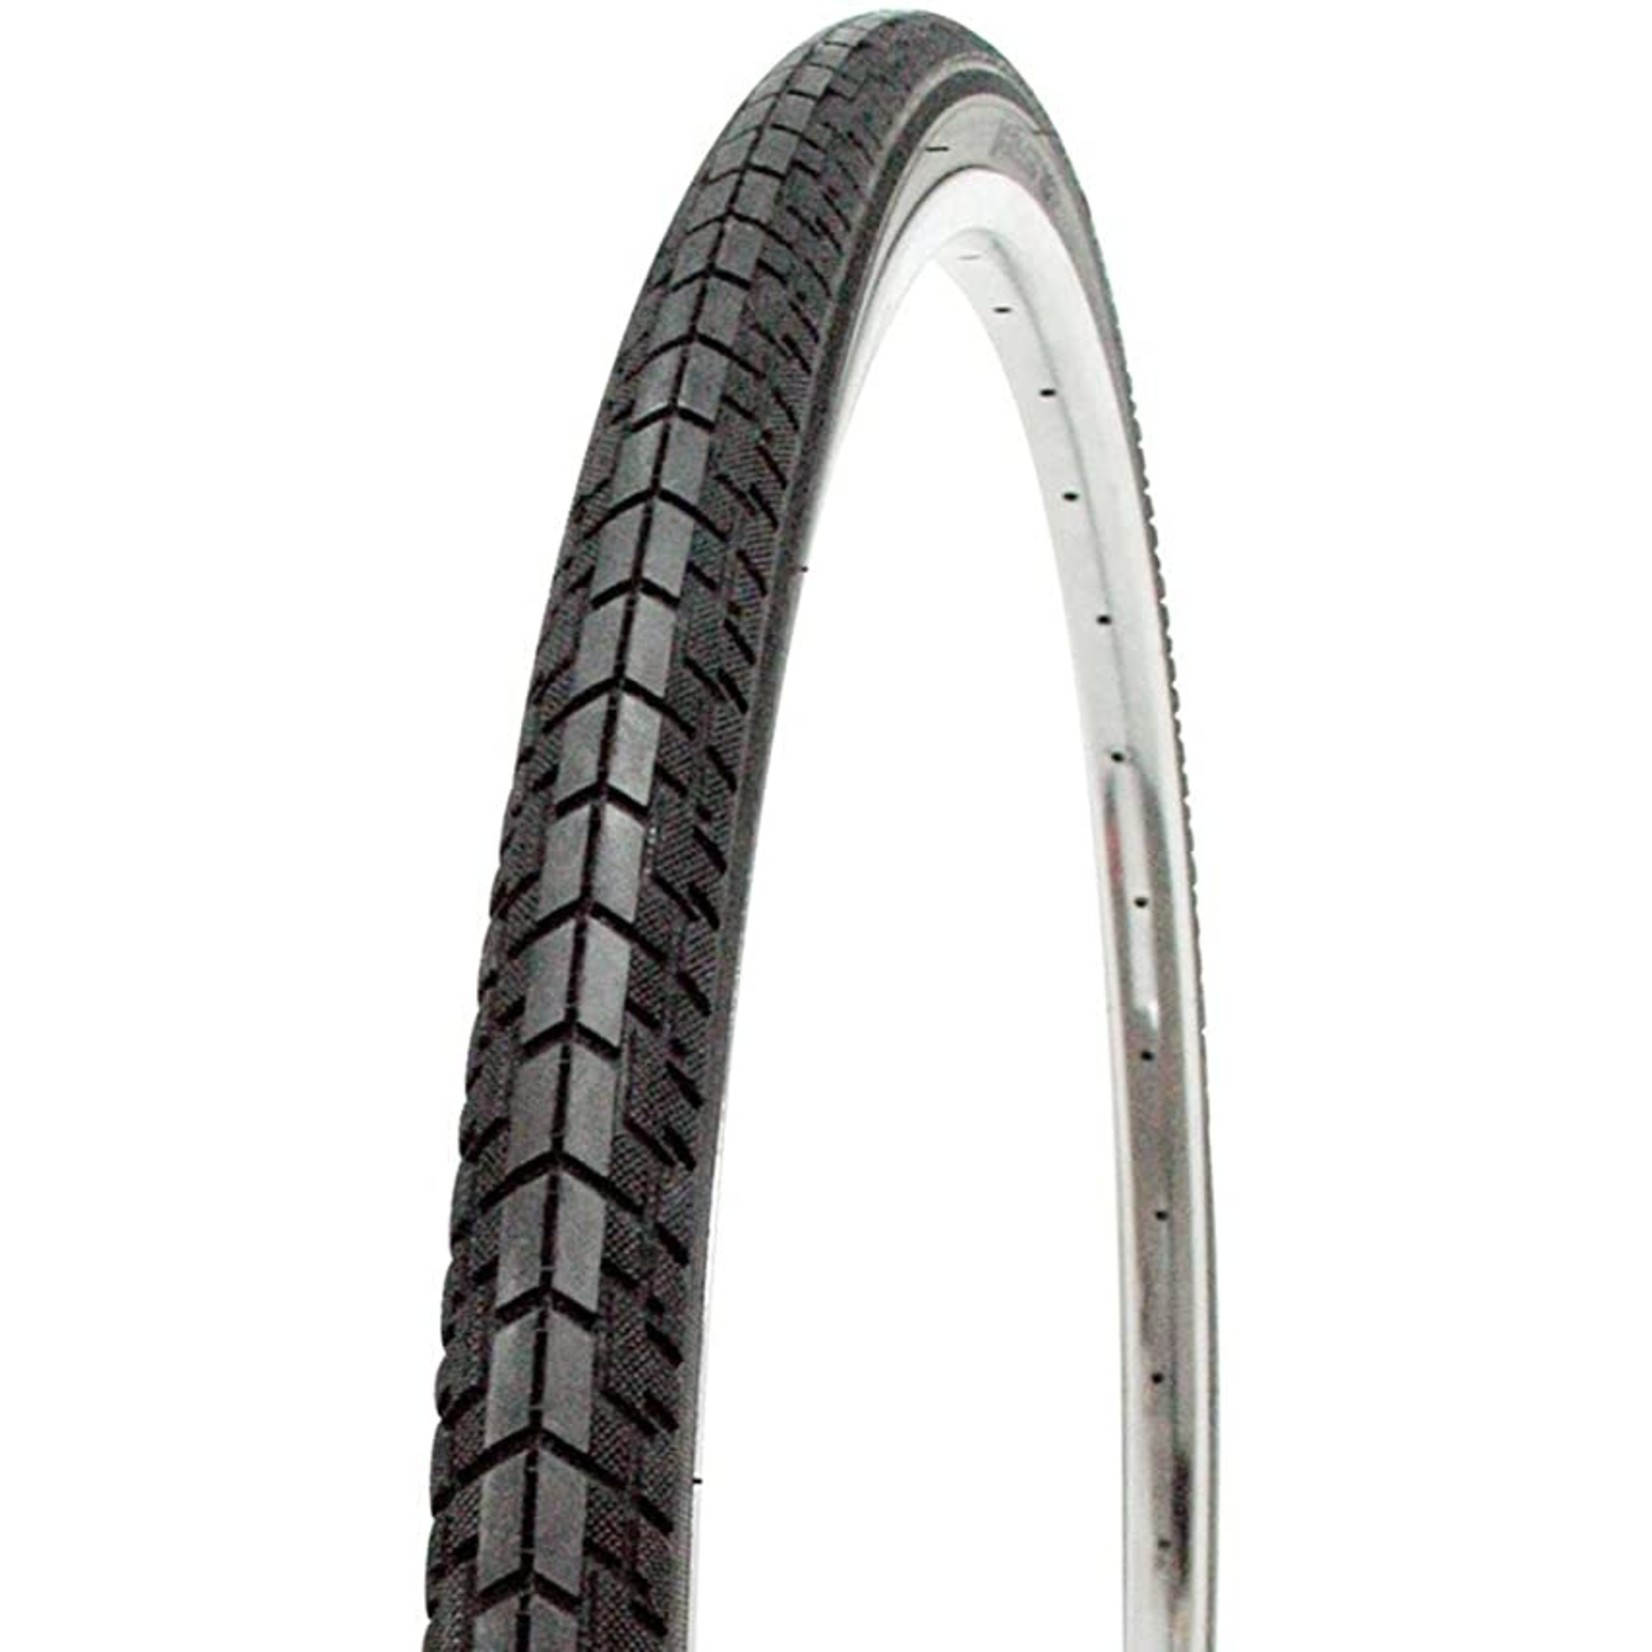 Kenda K803 Wire Bead Tire, 700x38c